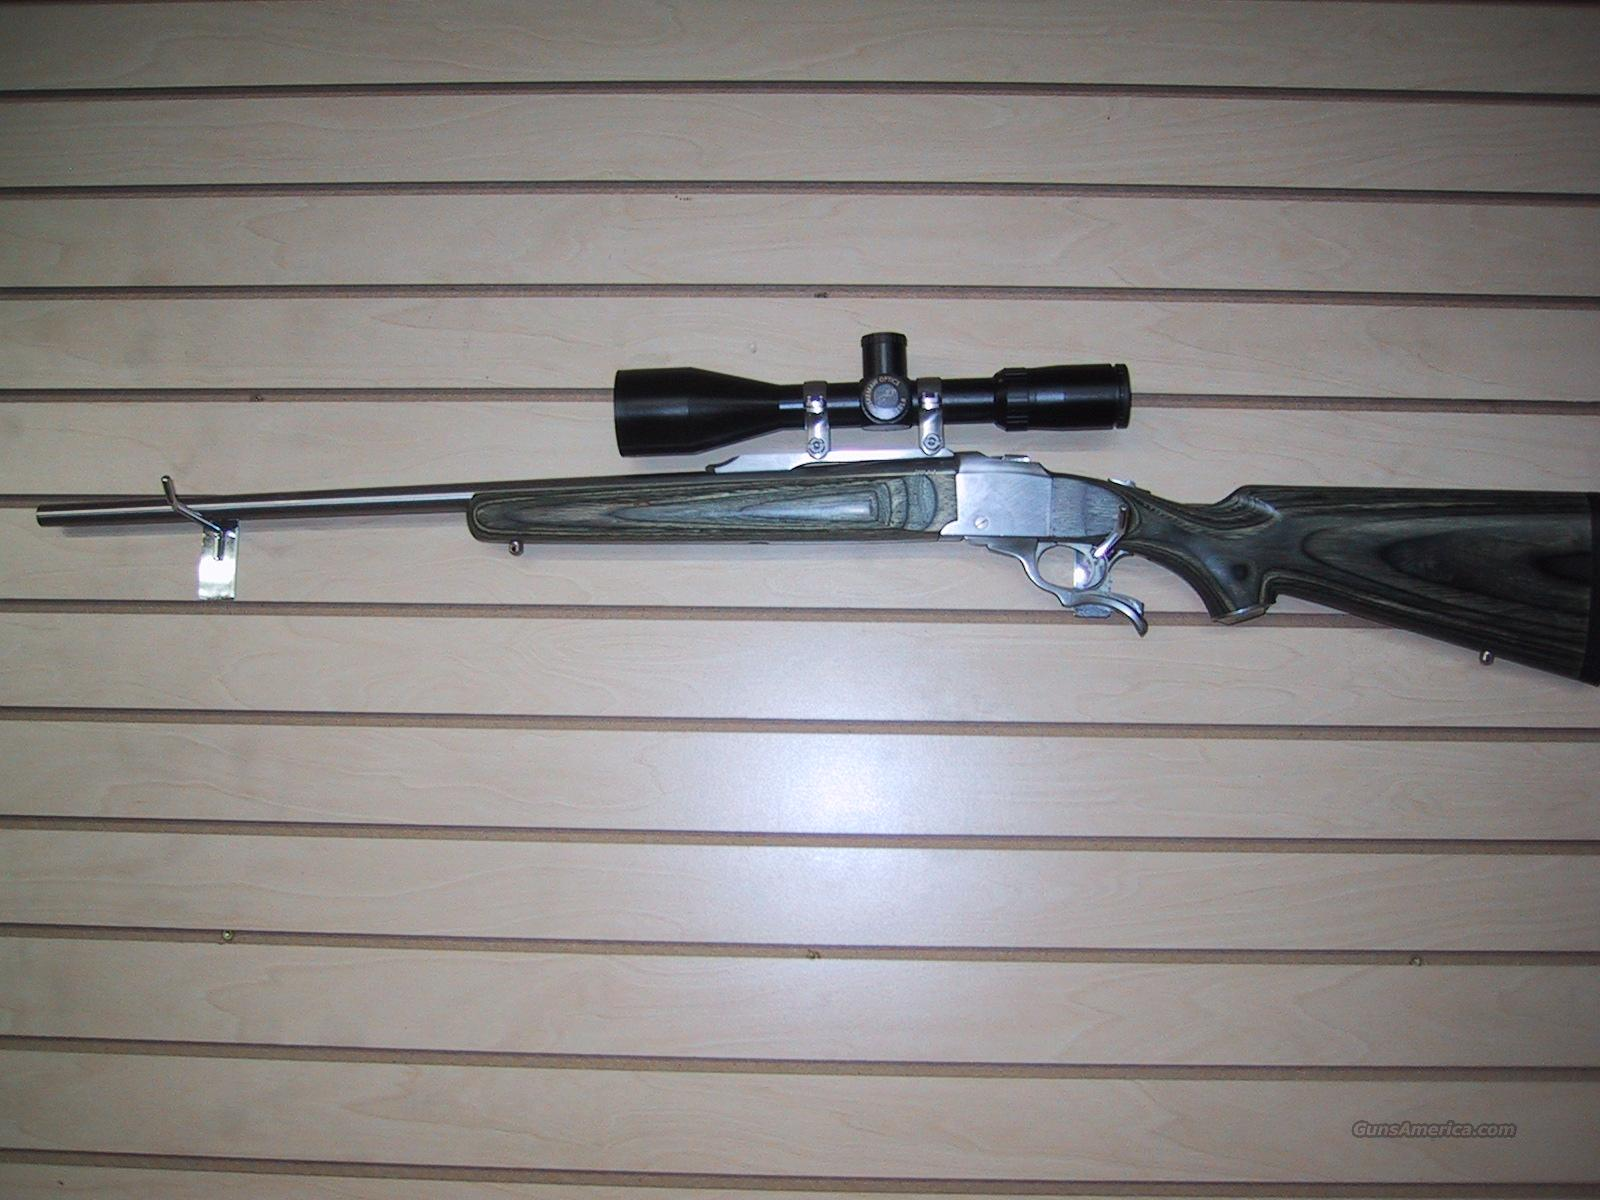 Stainless 7mm STW  Guns > Rifles > Ruger Rifles > #1 Type